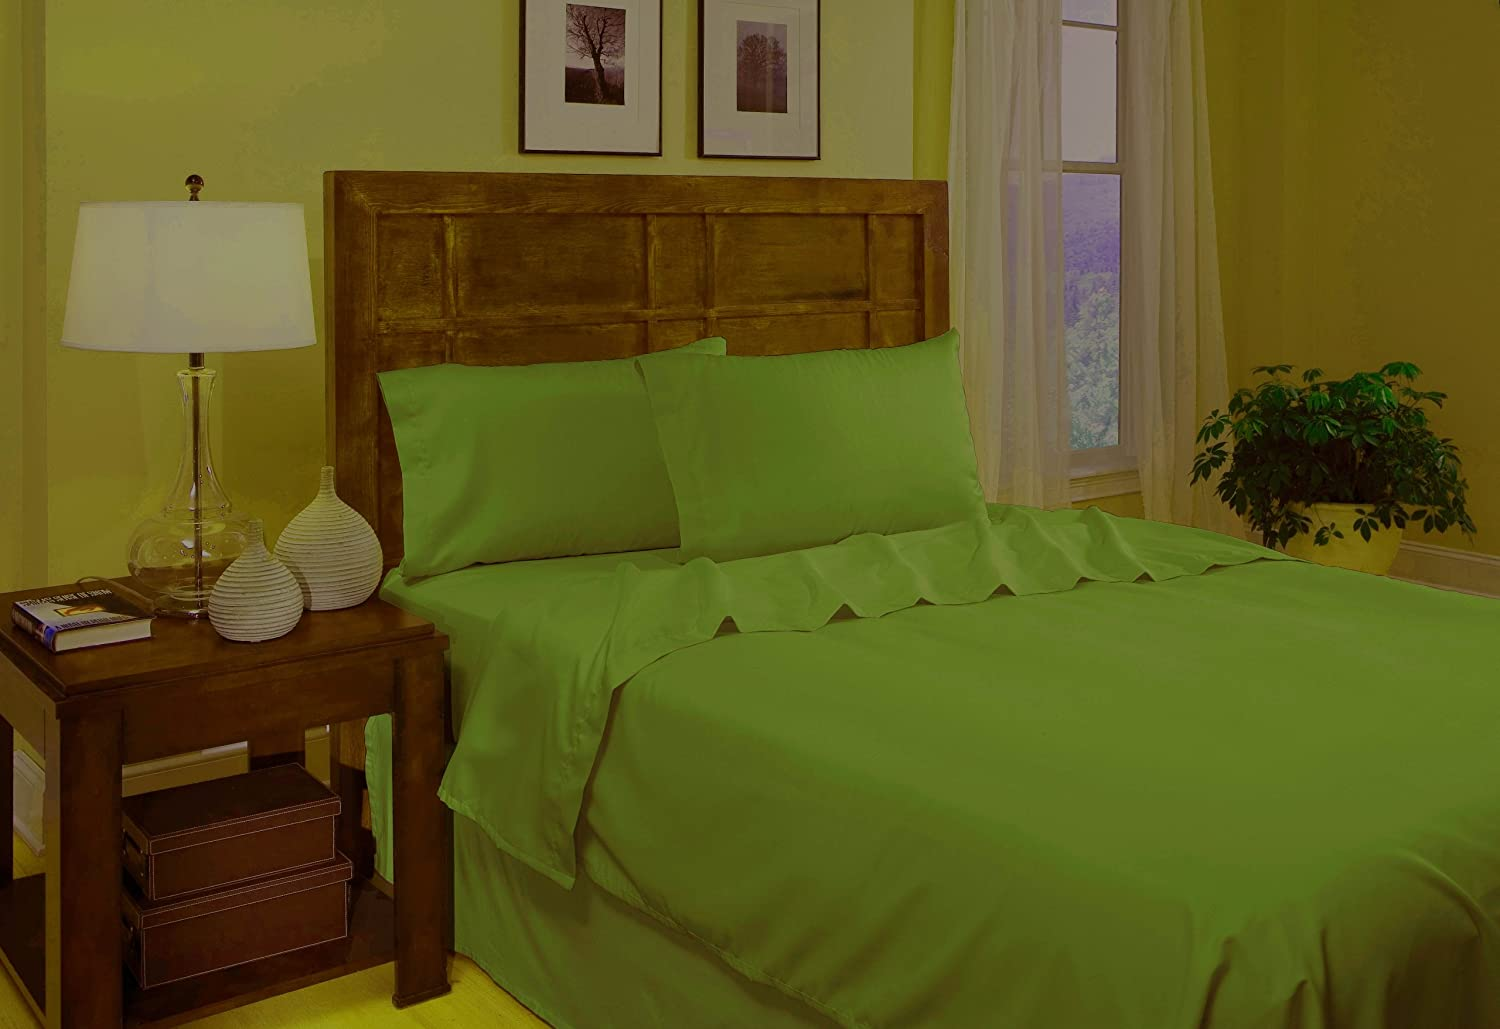 Lime Green Comforter Bedding Ease Bedding With Style